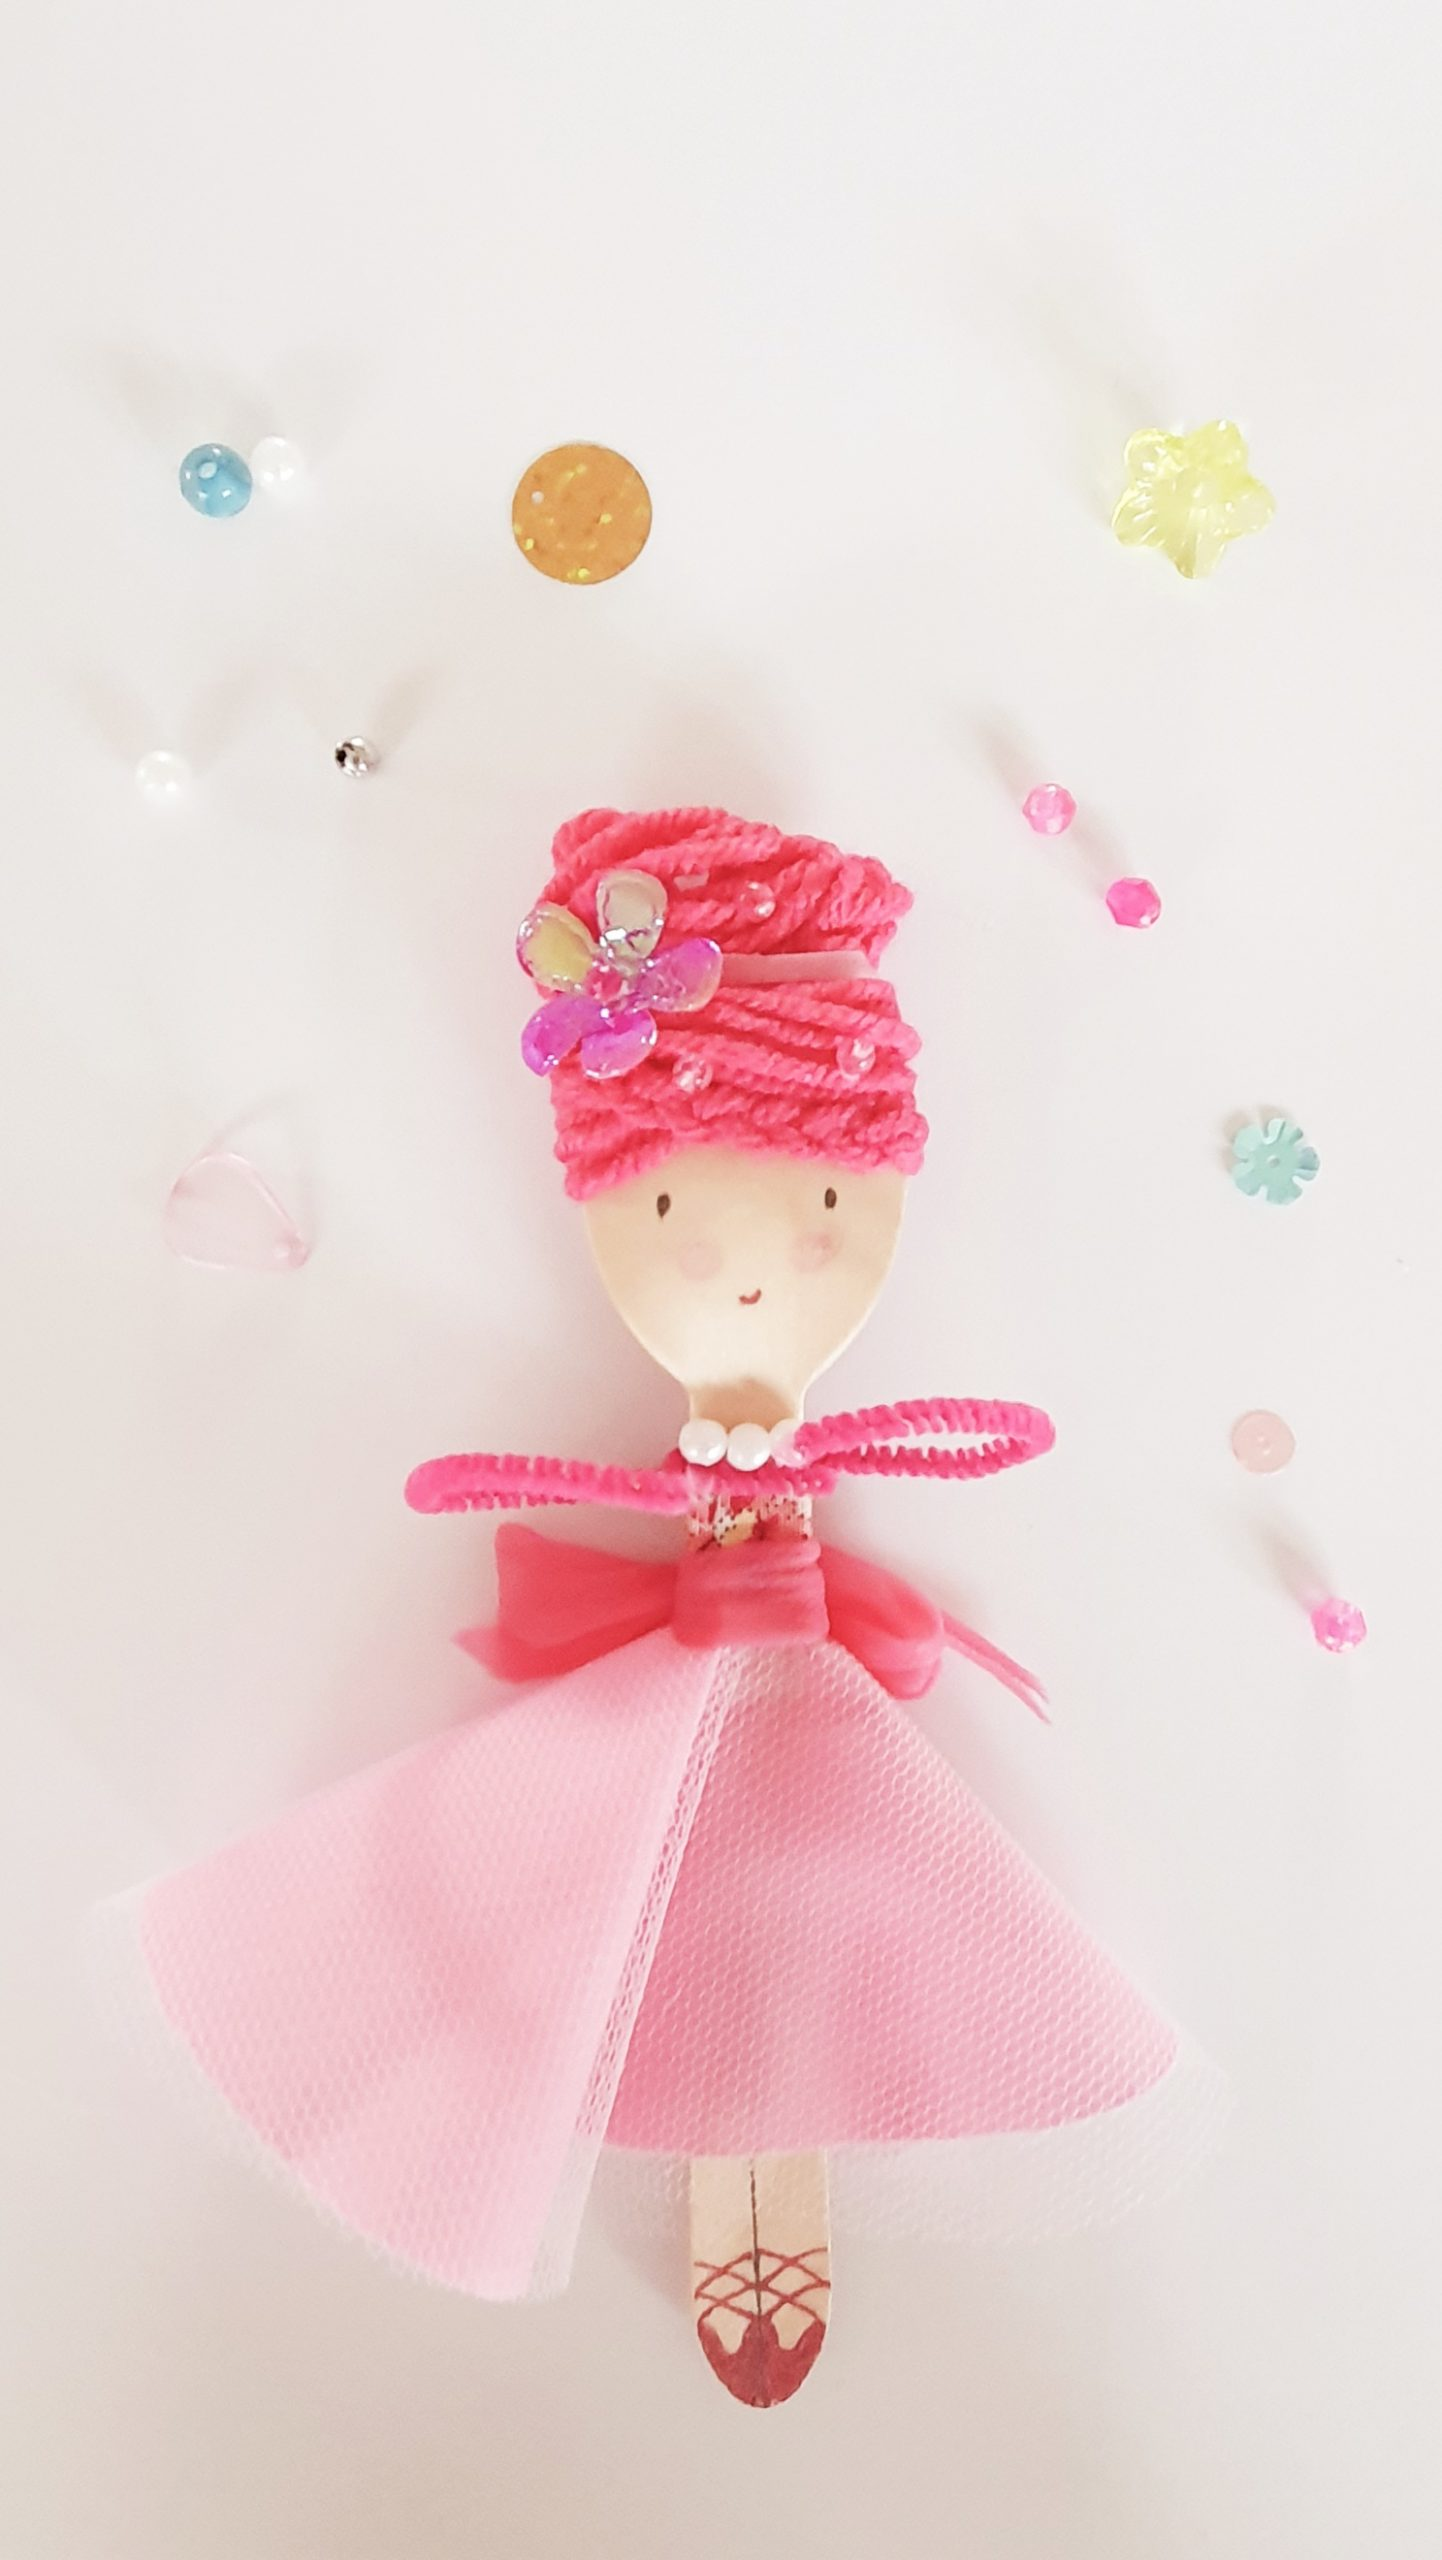 Make Your Own Spoon Doll